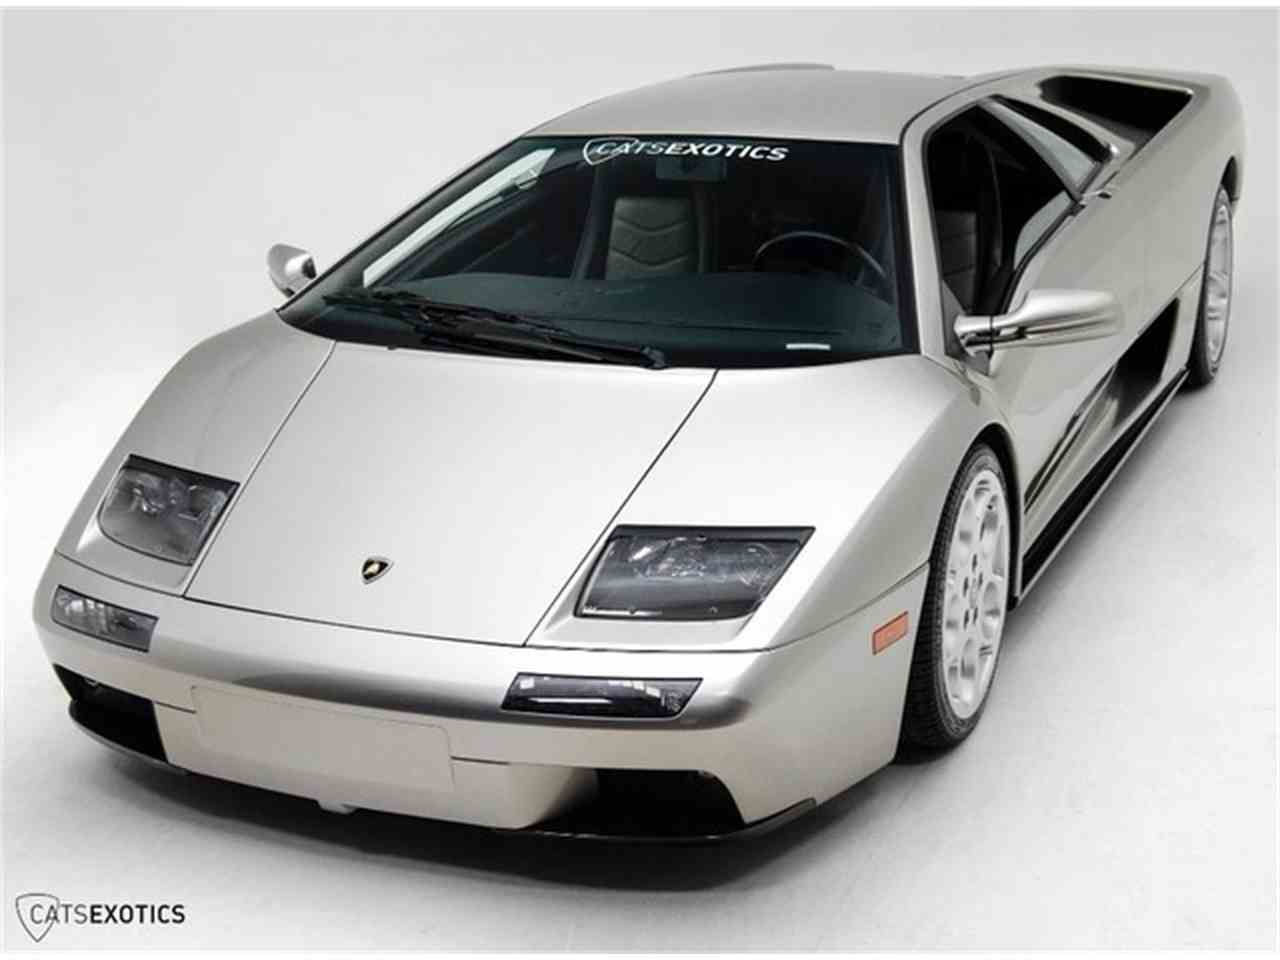 Large Picture of 2001 Diablo located in Washington - $360,000.00 - MZI1